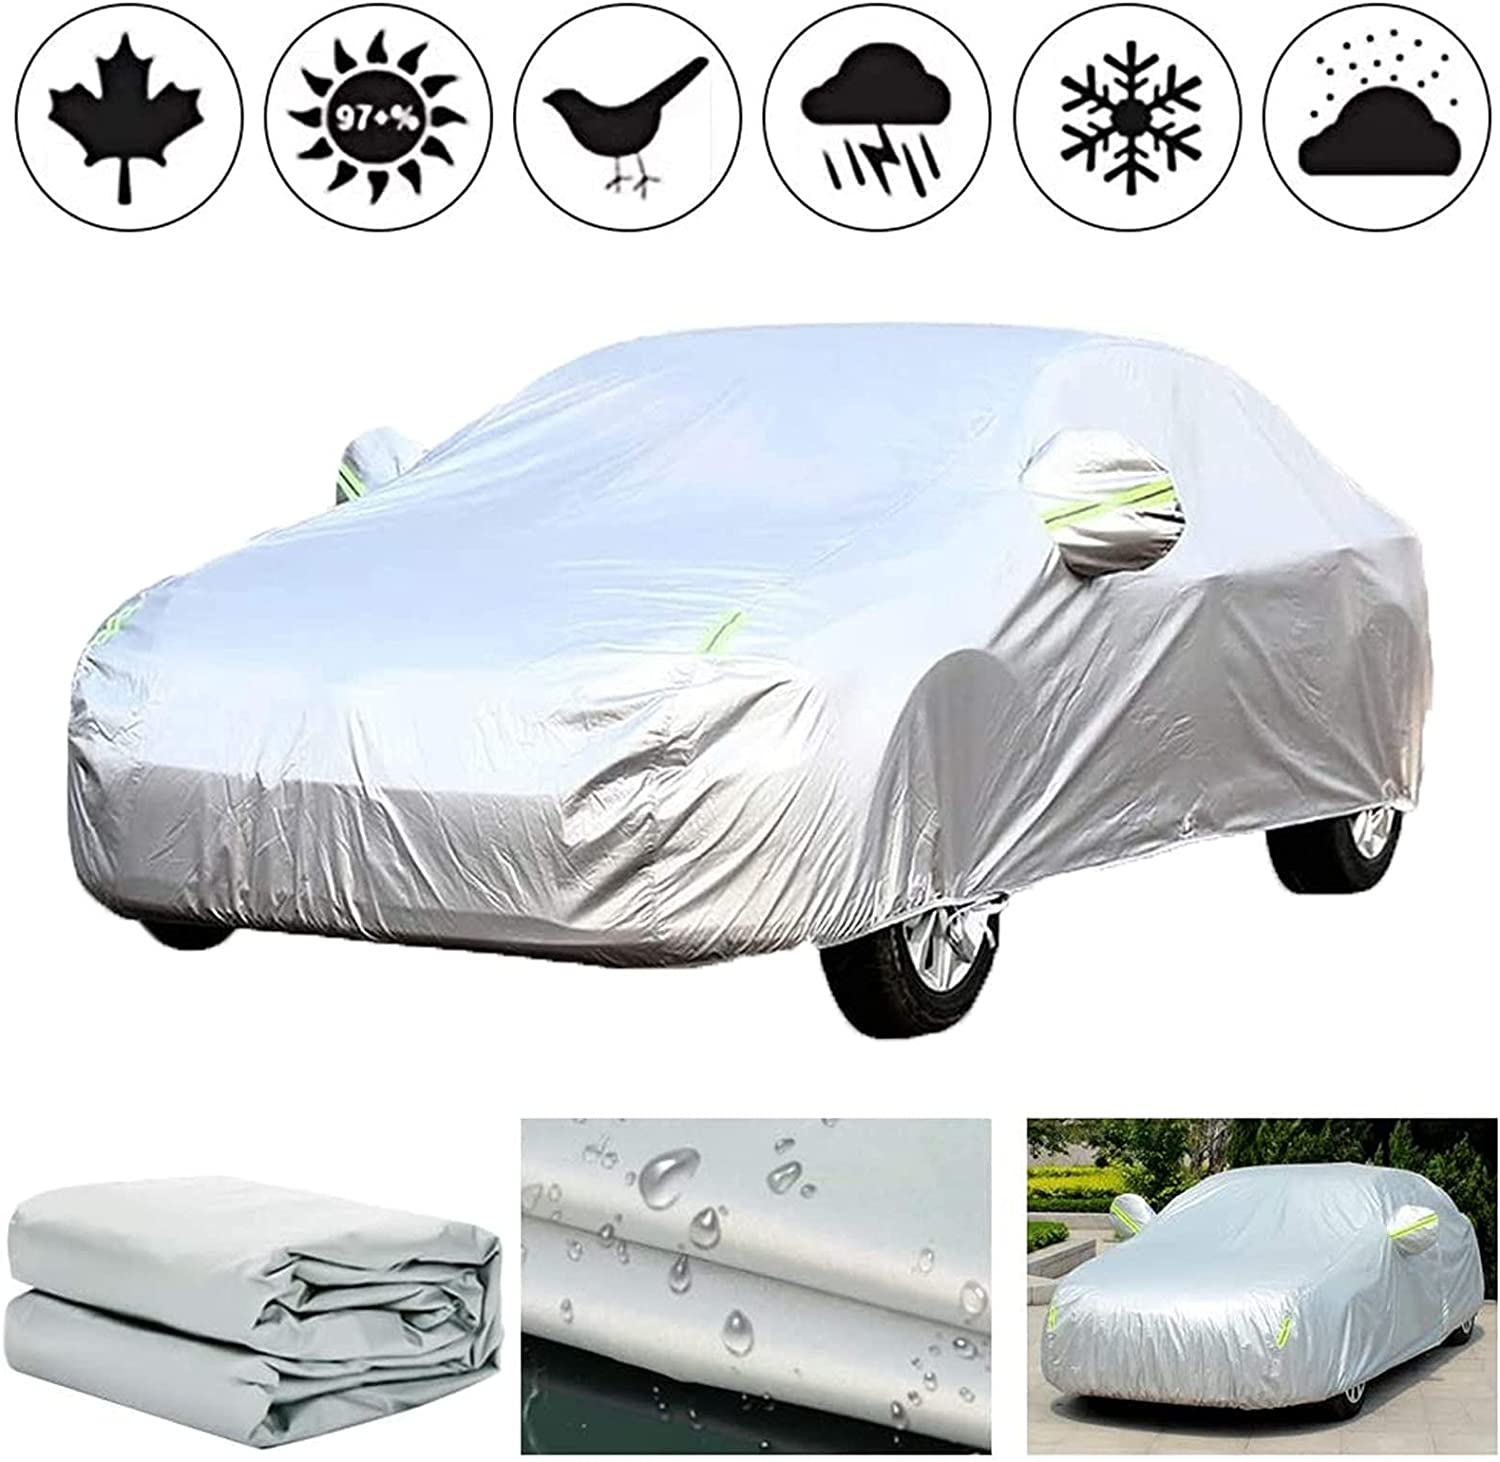 ADLIN All-Weather Car Protection A surprise price is realized Cover Compa We OFFer at cheap prices Full Outdoor